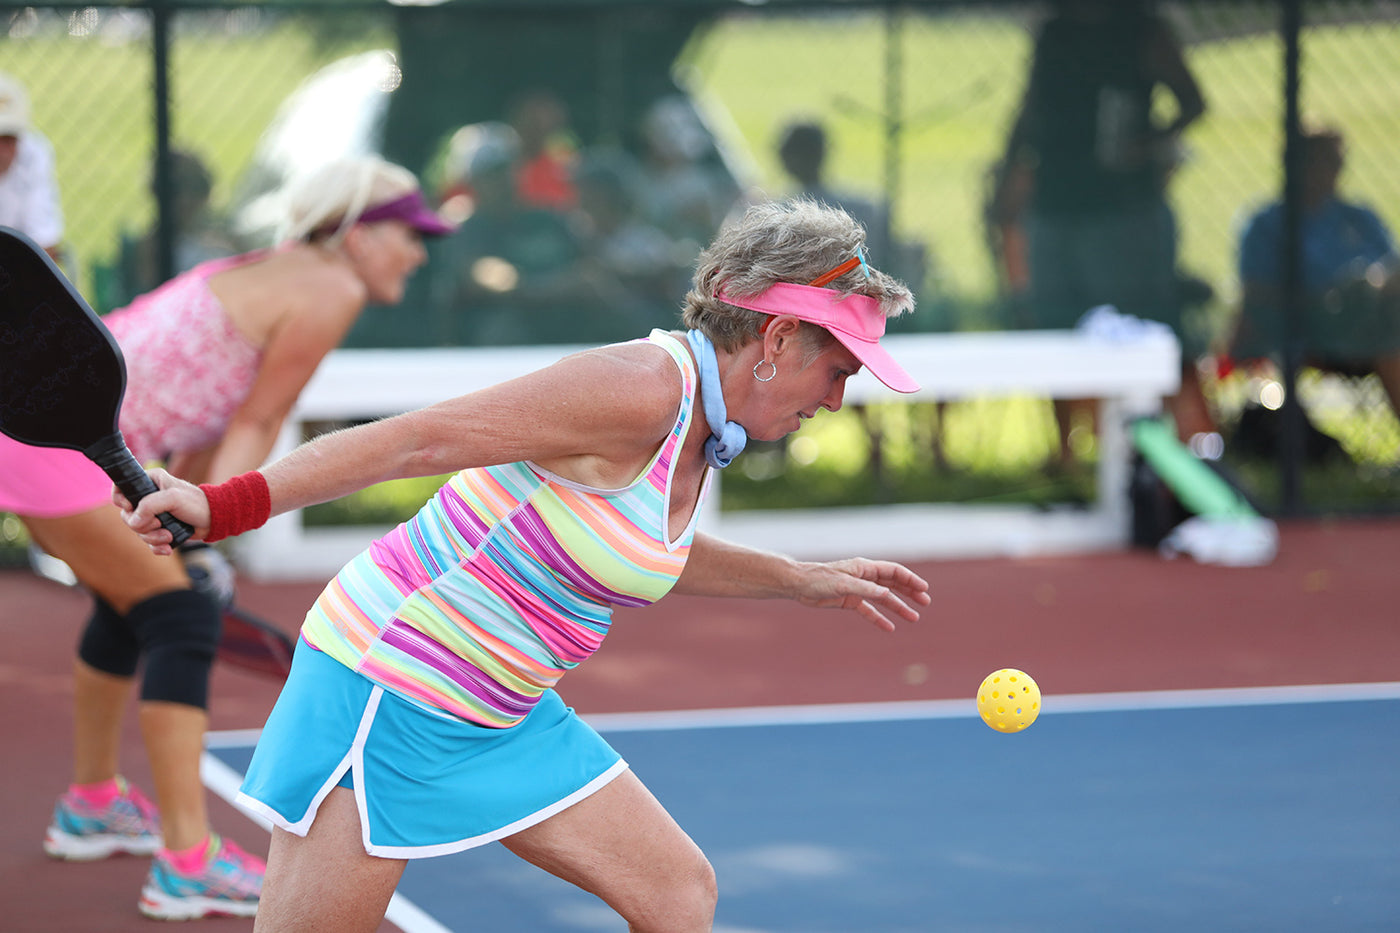 Health and Social Benefits of Pickleball for Young and Older Adults